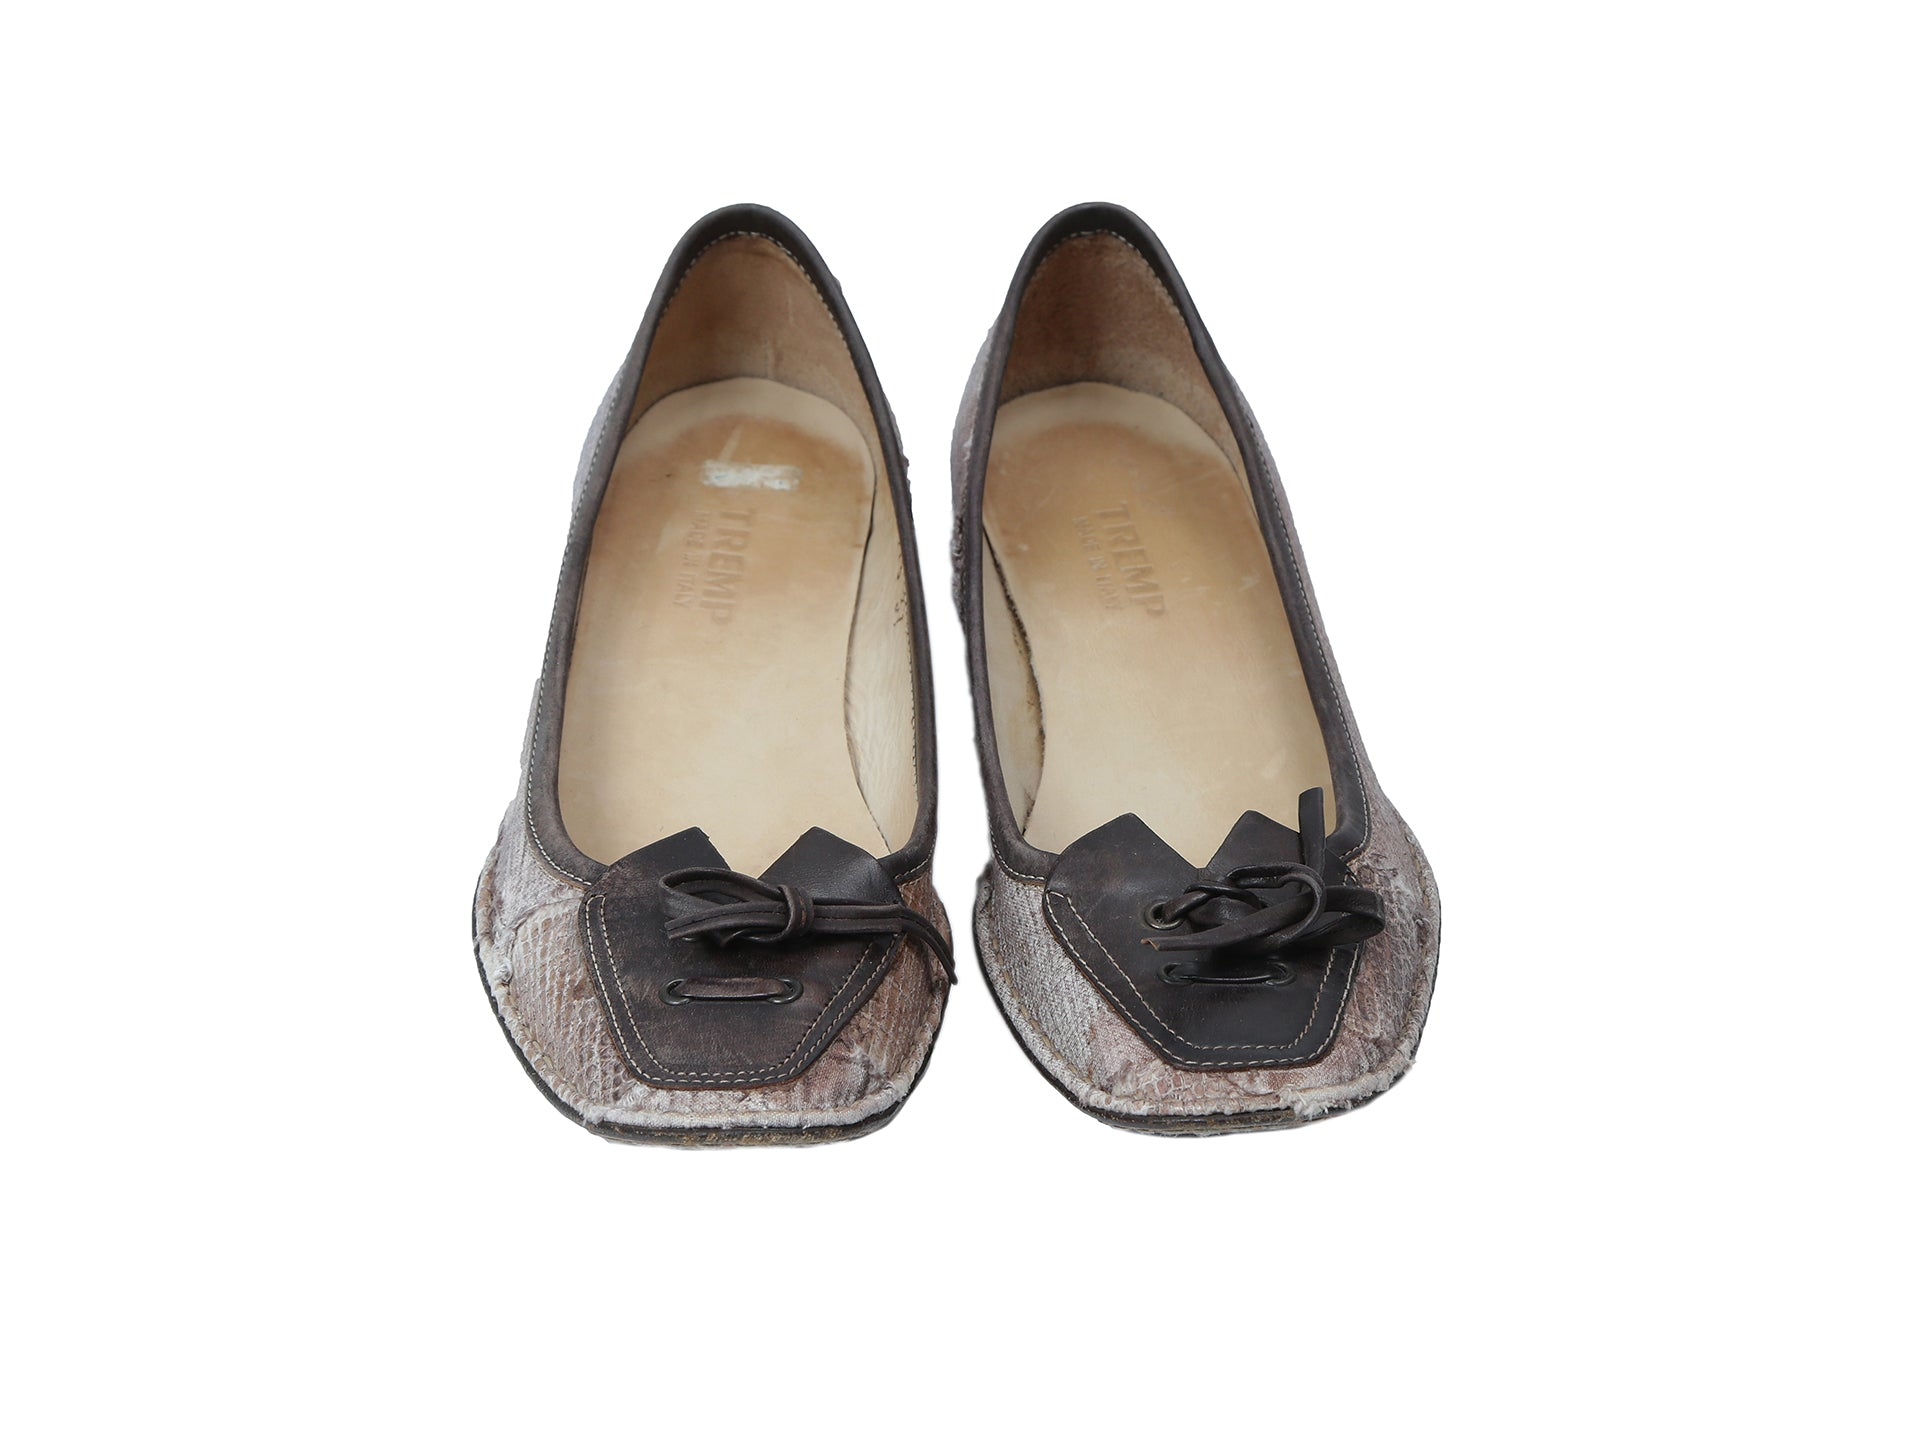 Tremp brown and beige ballerinas size 37 (EU)